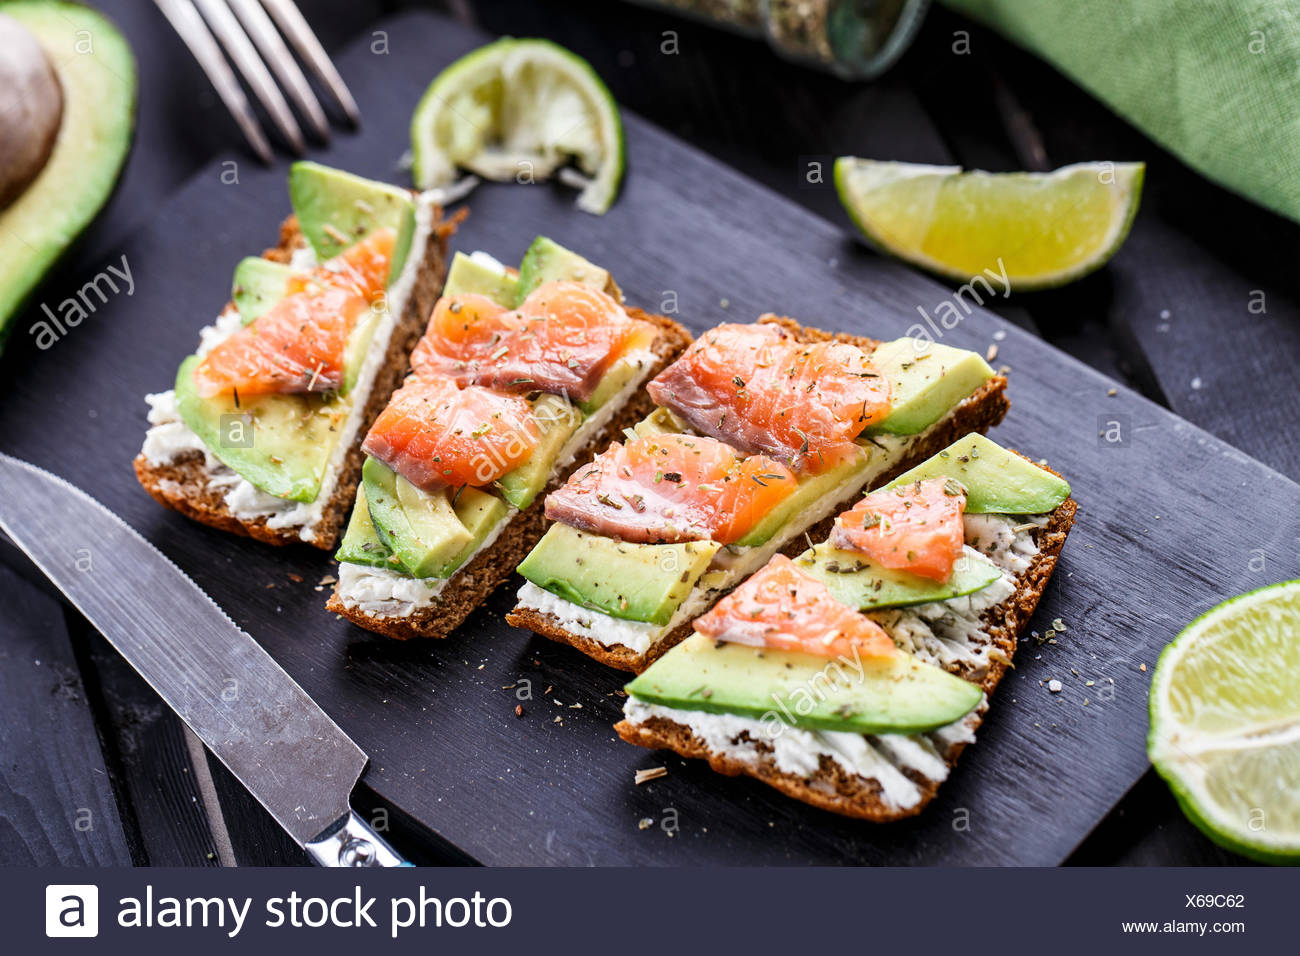 Sandwich with avocado and smoked salmon on a black wooden board - Stock Image